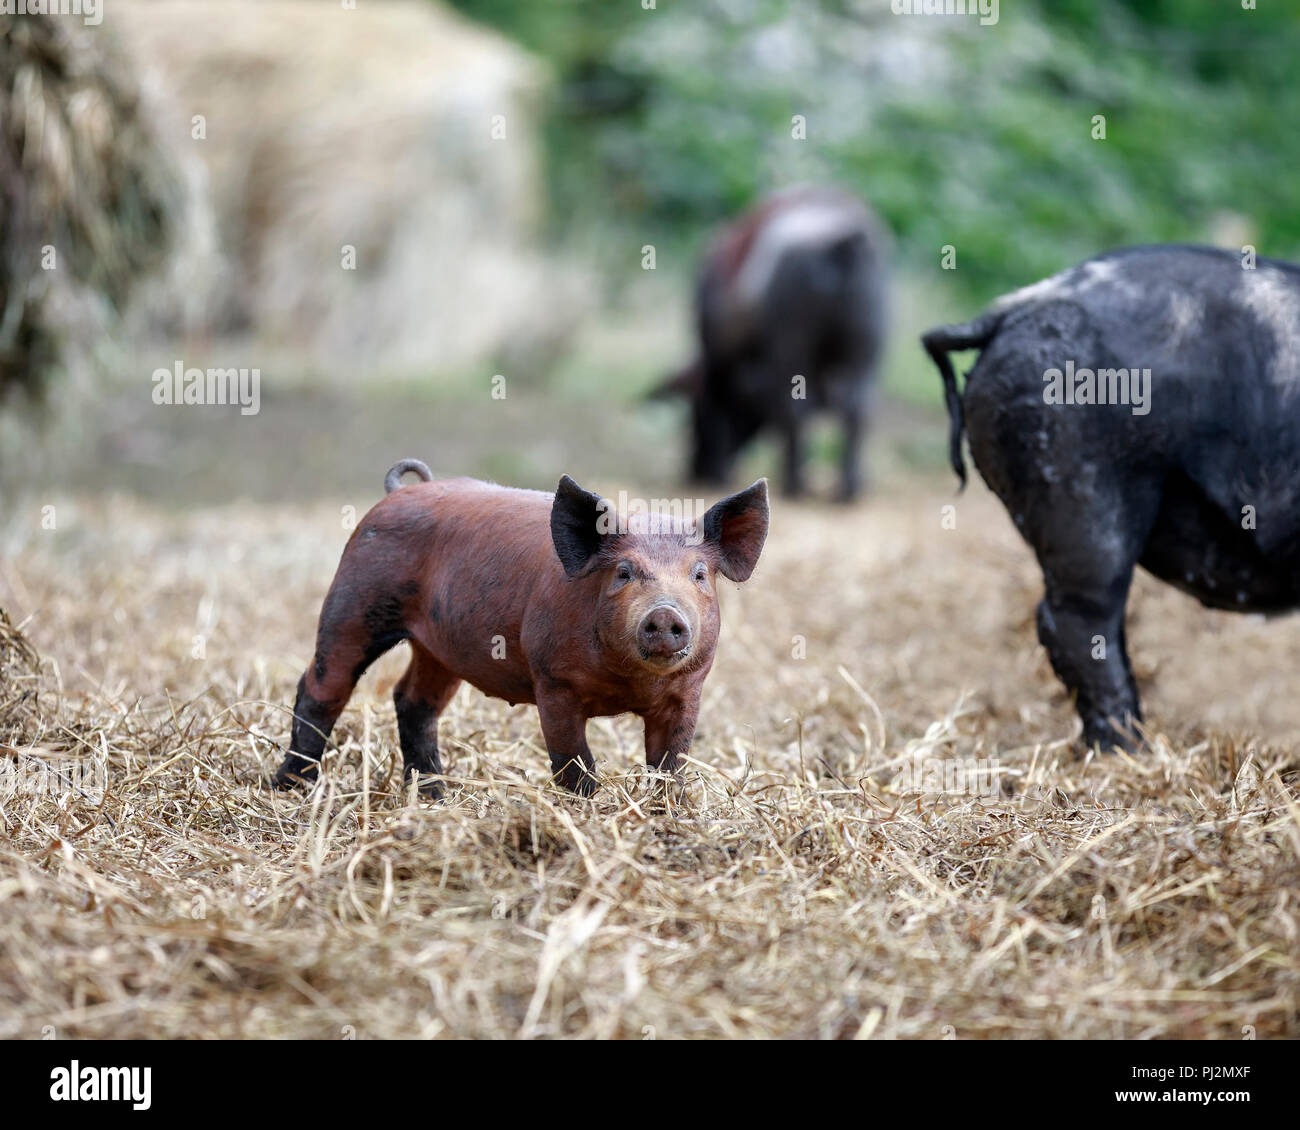 Piglet standing in outdoor pen, Manitoba, Canada. - Stock Image